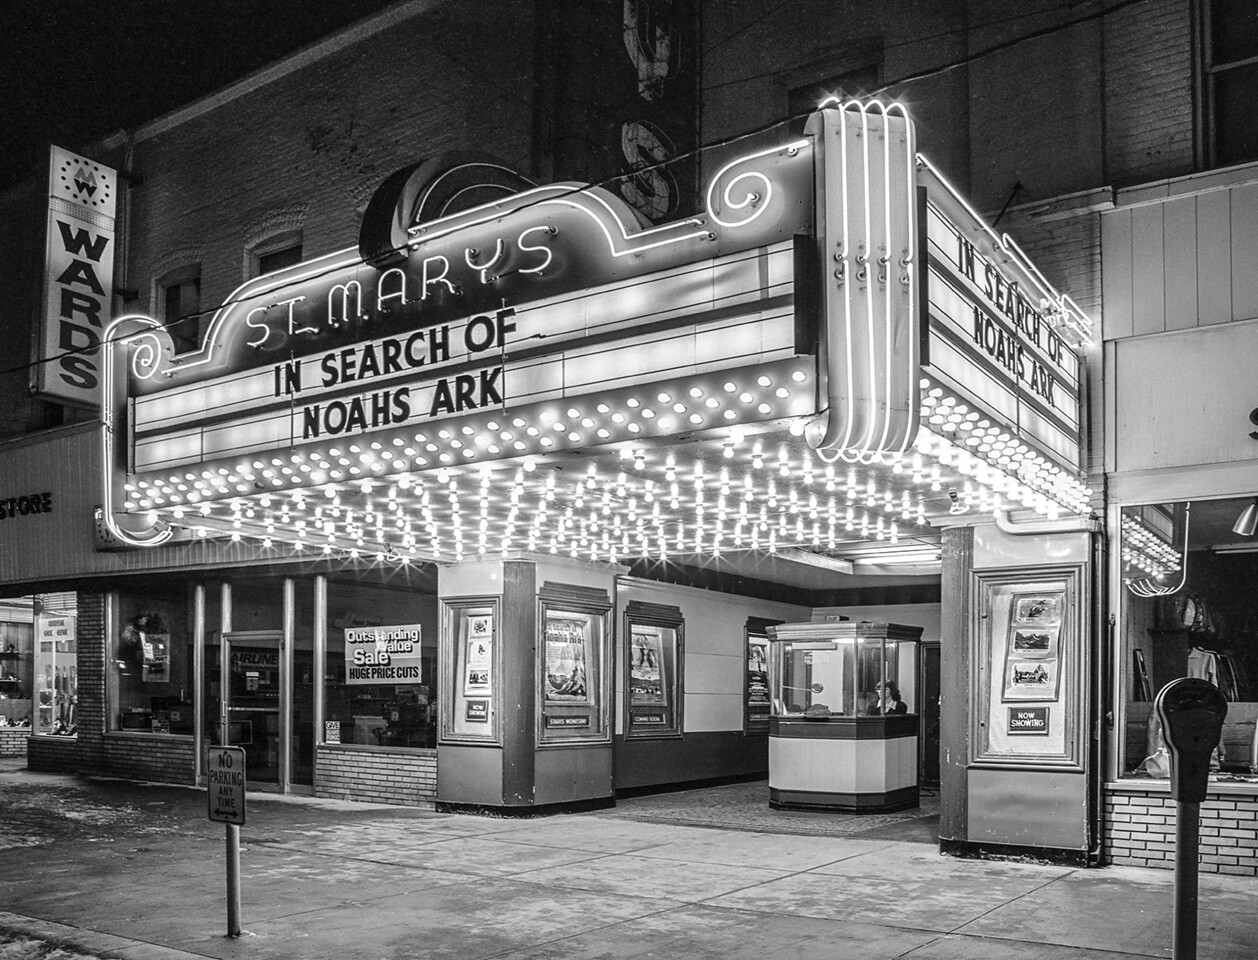 St. Marys OH movie theater 1976.